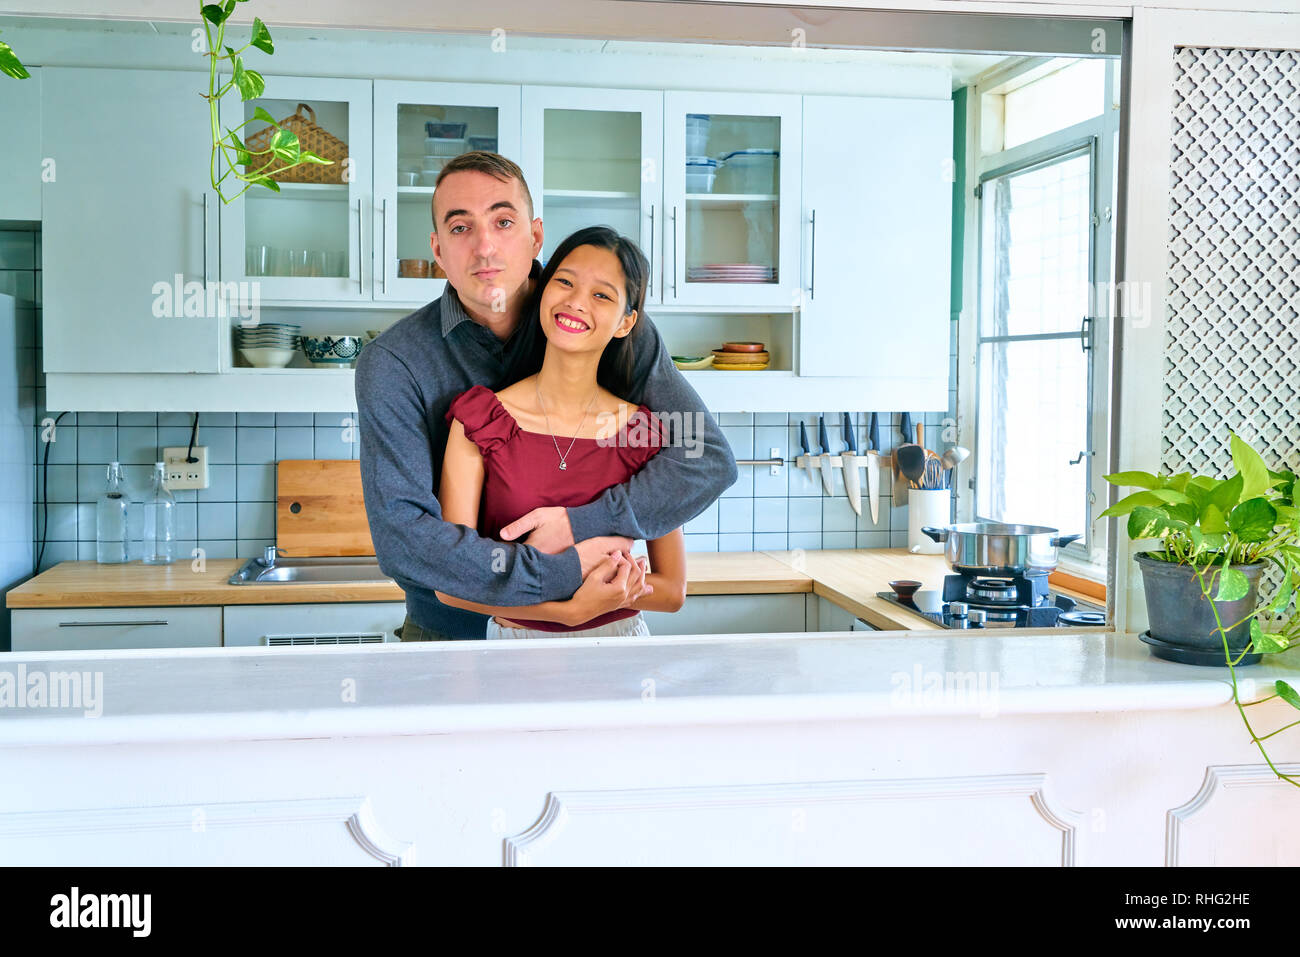 Lovely couple posing - embracing and smiling face of young woman - Stock Image